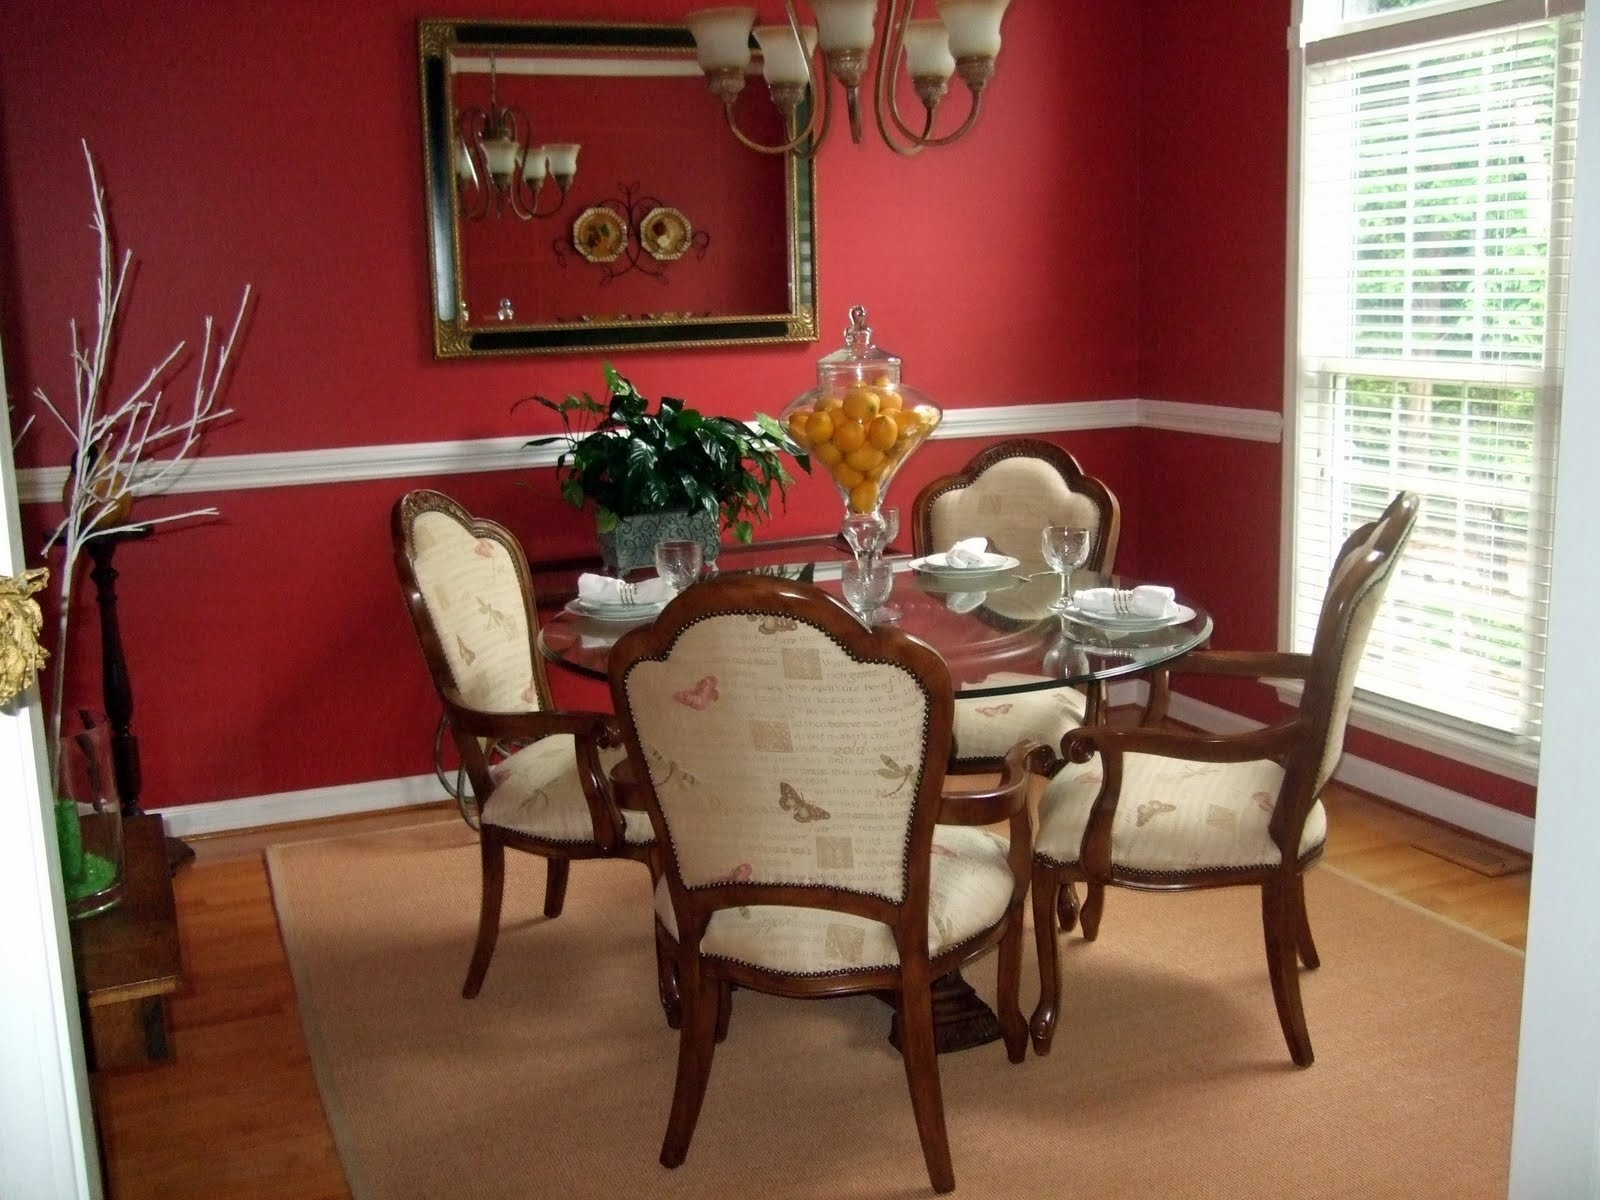 Red Dining Room Wall Decor Intended For Newest Dining Room Wall Accents (View 9 of 15)